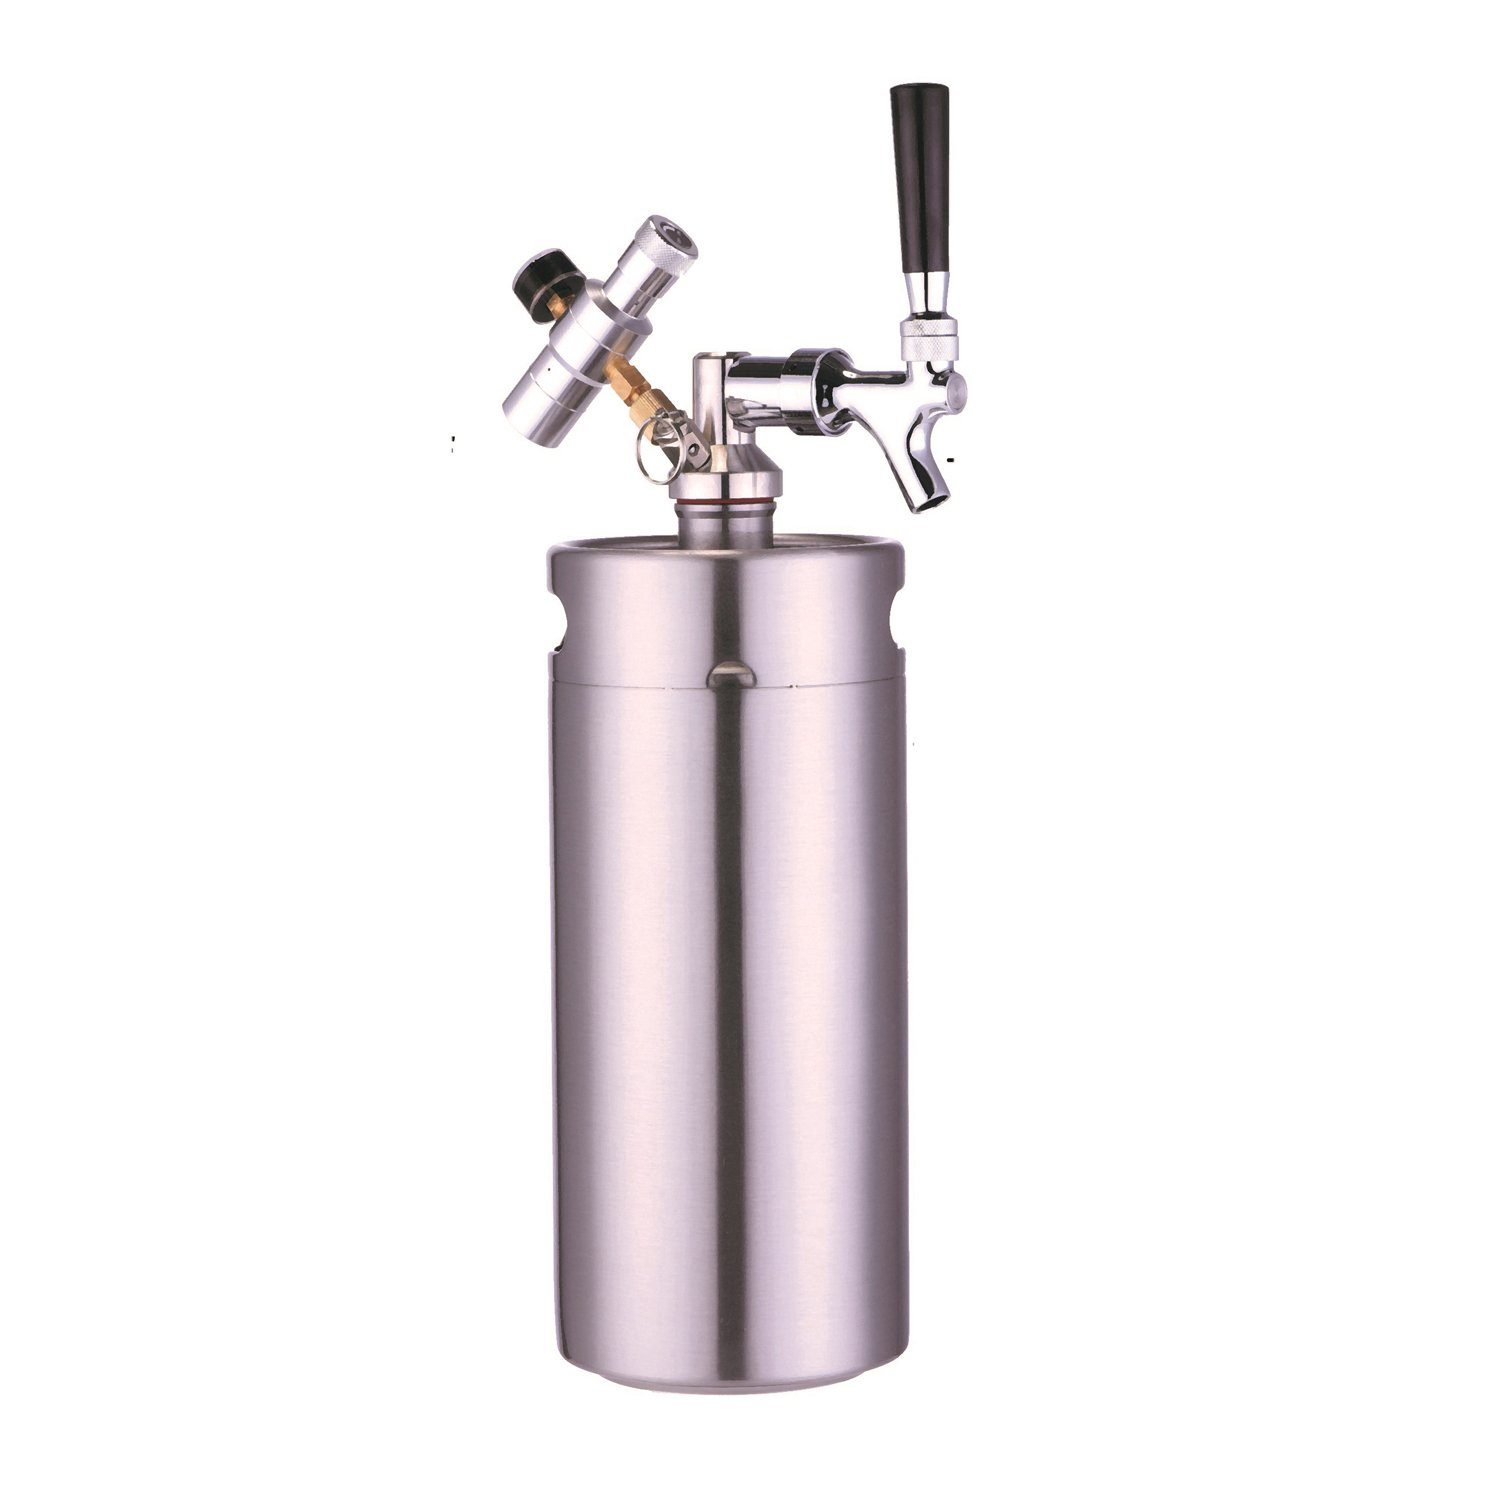 HAN-MM 128 Ounce Homebrew Keg System Kit for Home Brew Beer - with a HAN-MM Beer Dispensor, HAN-MM Mini CO2 Regulator and a HAN-MM 128 Ounce Stainless Steel Keg